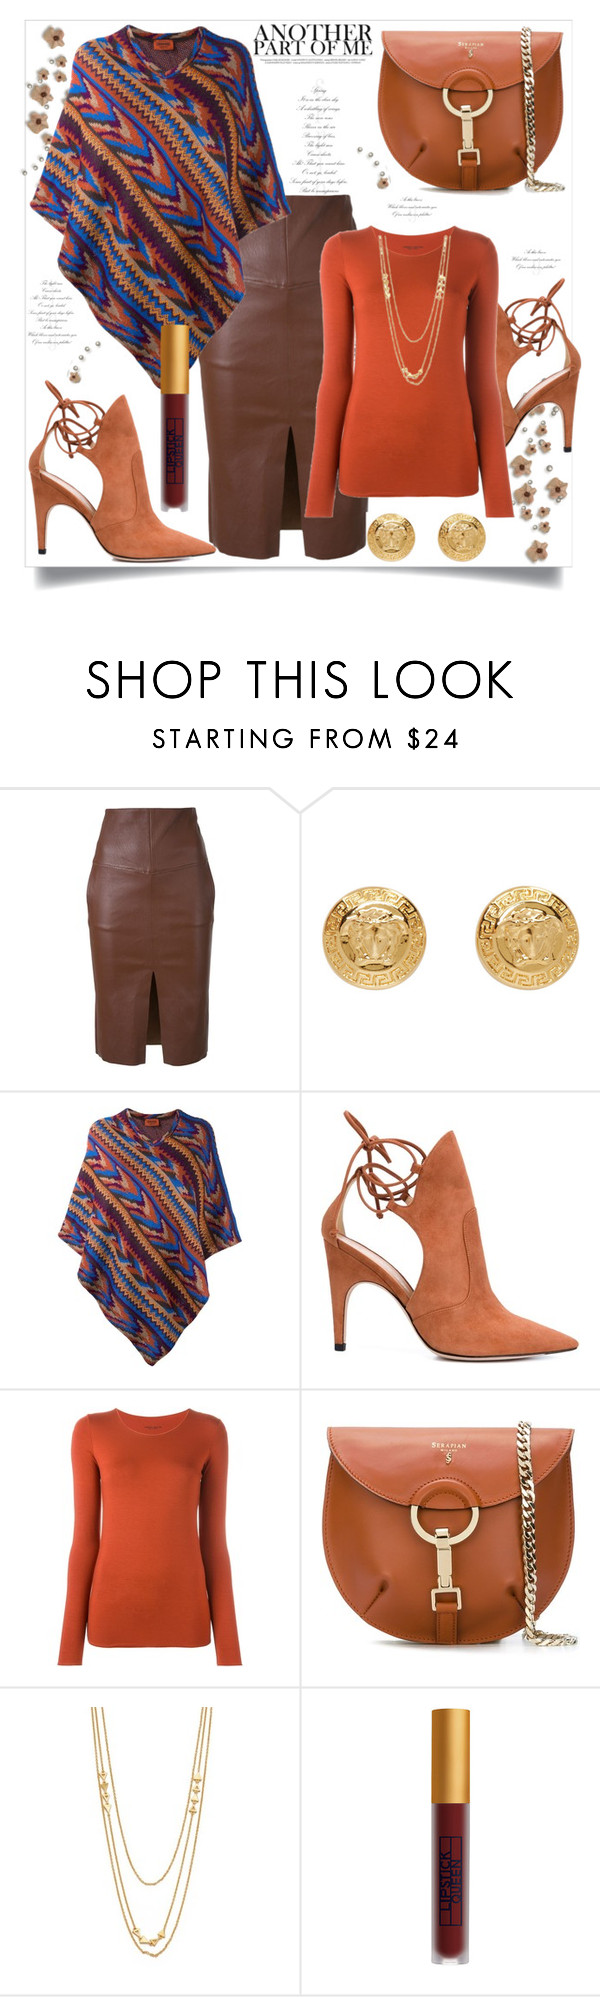 """Another Part of Me This Fall"" by helenaymangual ❤ liked on Polyvore featuring Scanlan Theodore, Versace, Missoni, Derek Lam, Roberto Collina, Serapian, Gorjana and Lipstick Queen"